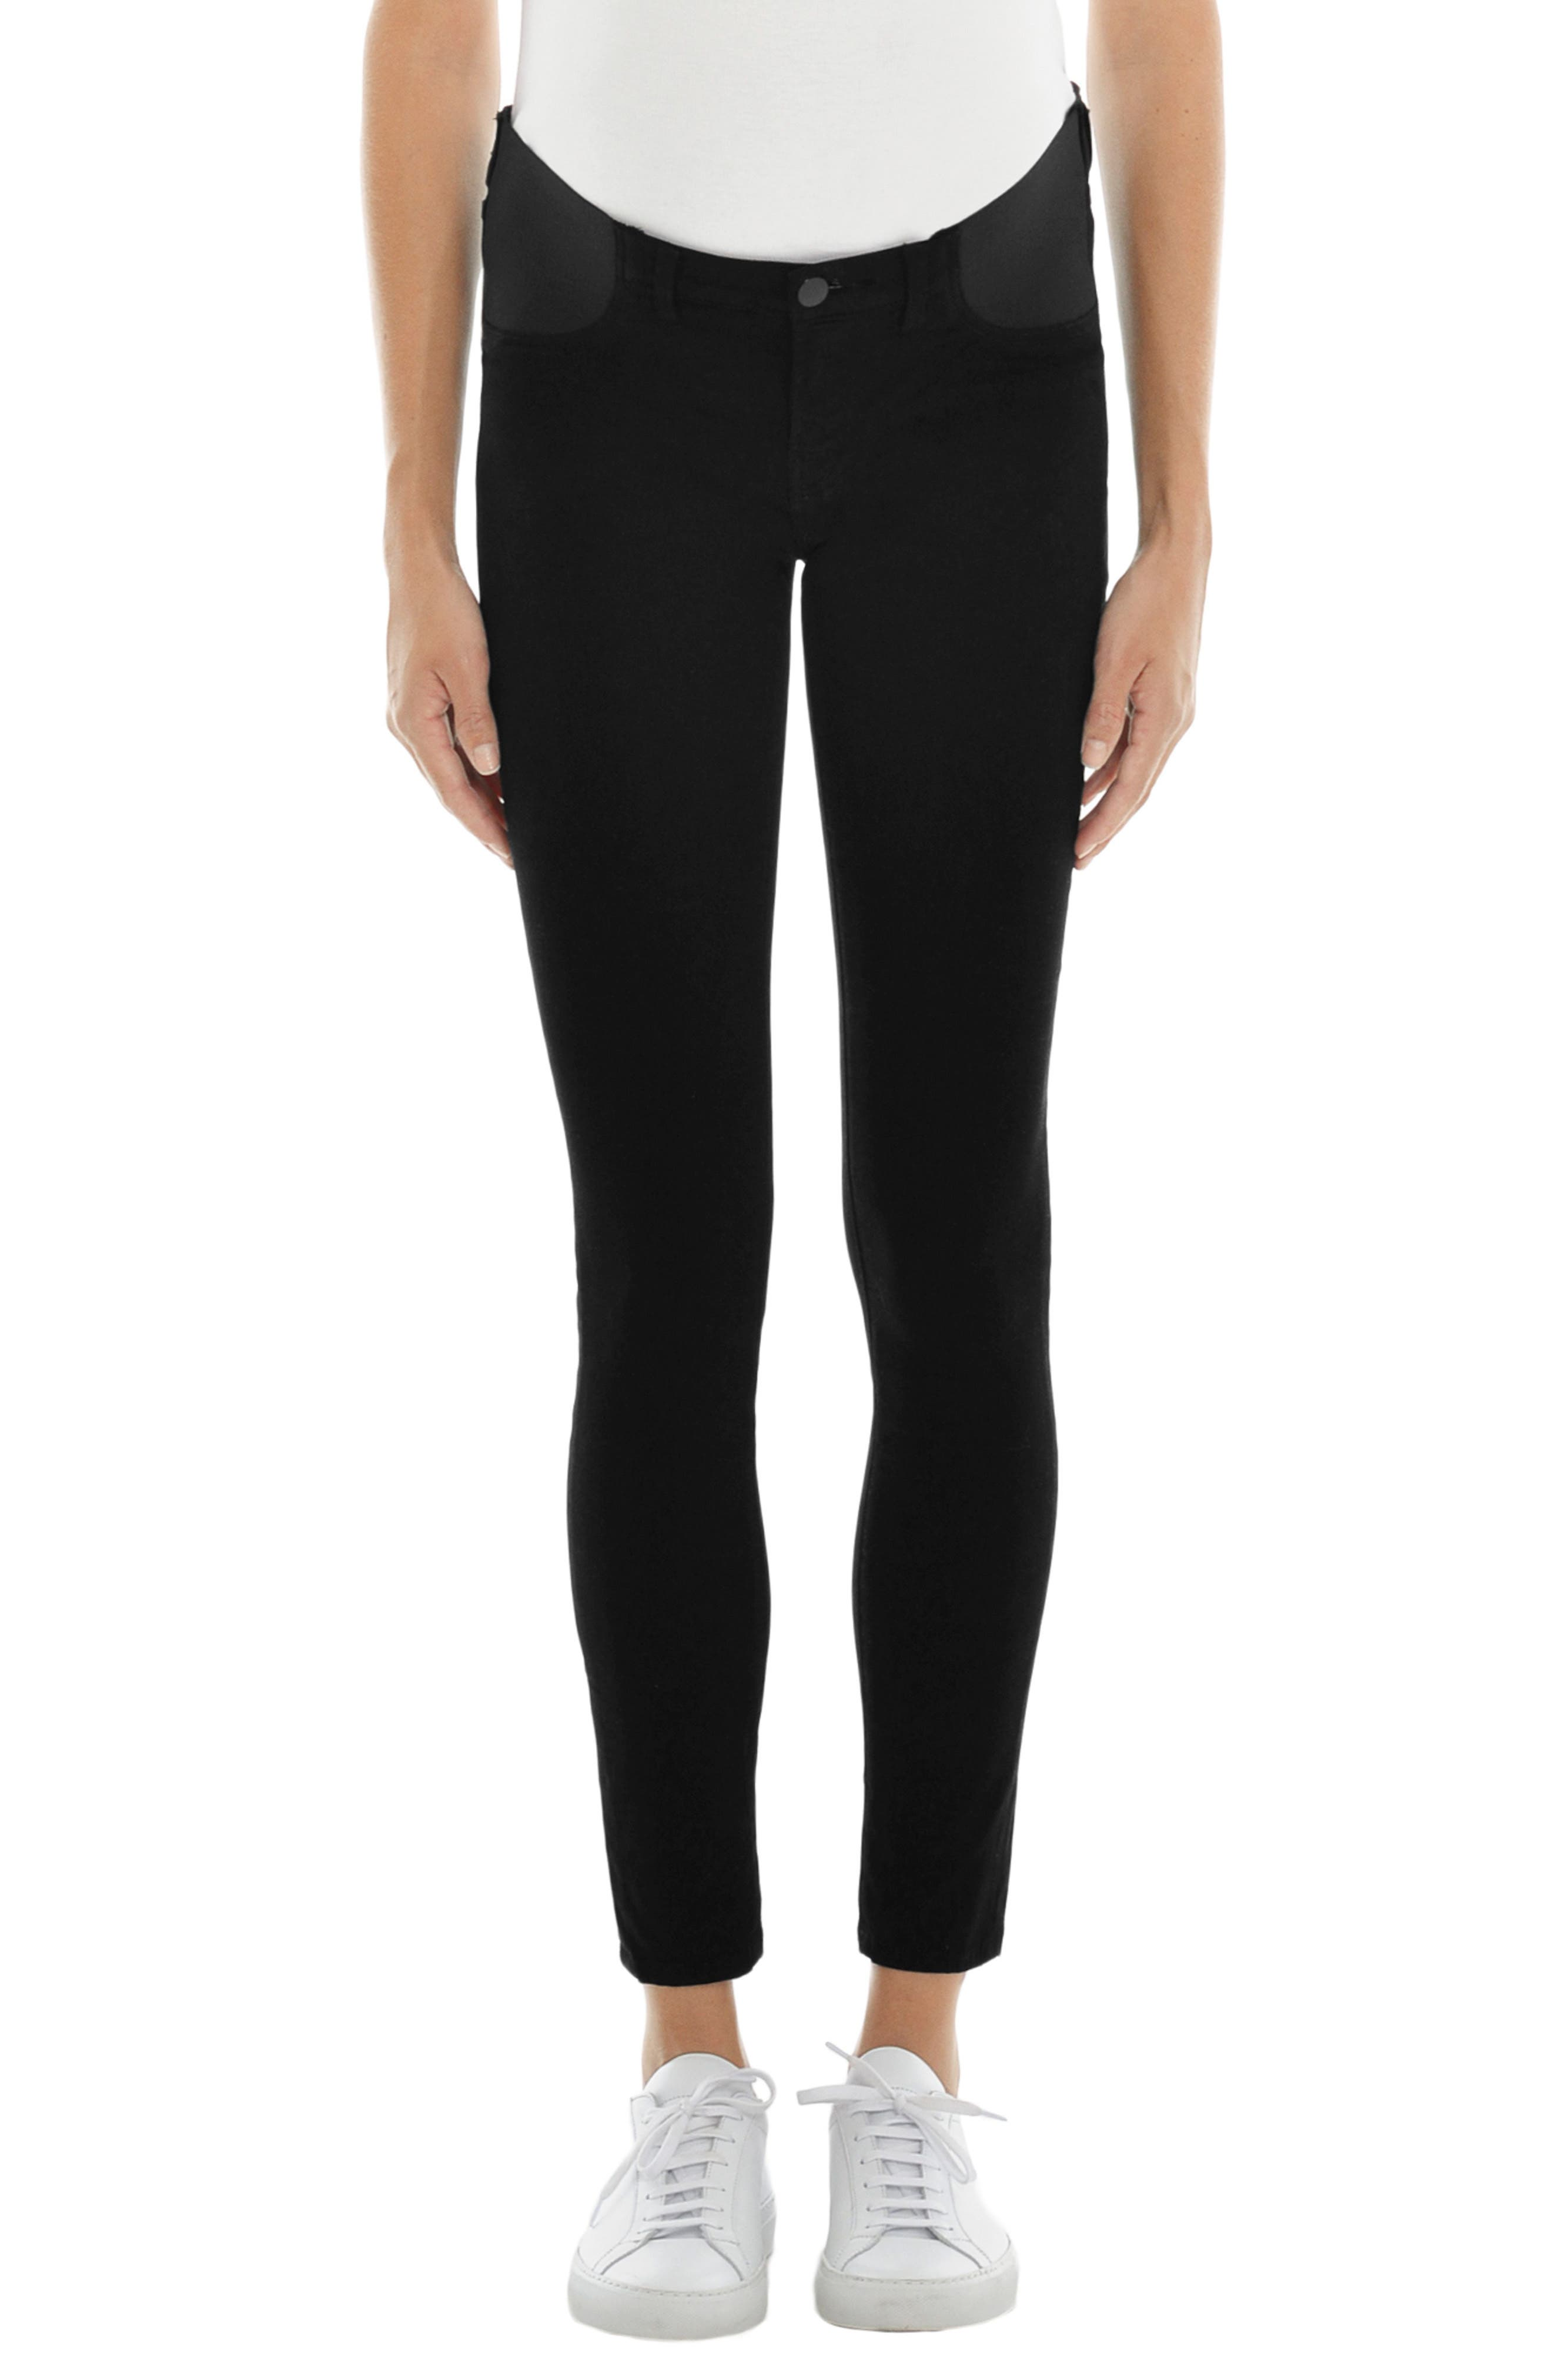 Mama J Luxe Sateen Maternity Skinny Jeans,                             Main thumbnail 1, color,                             Black